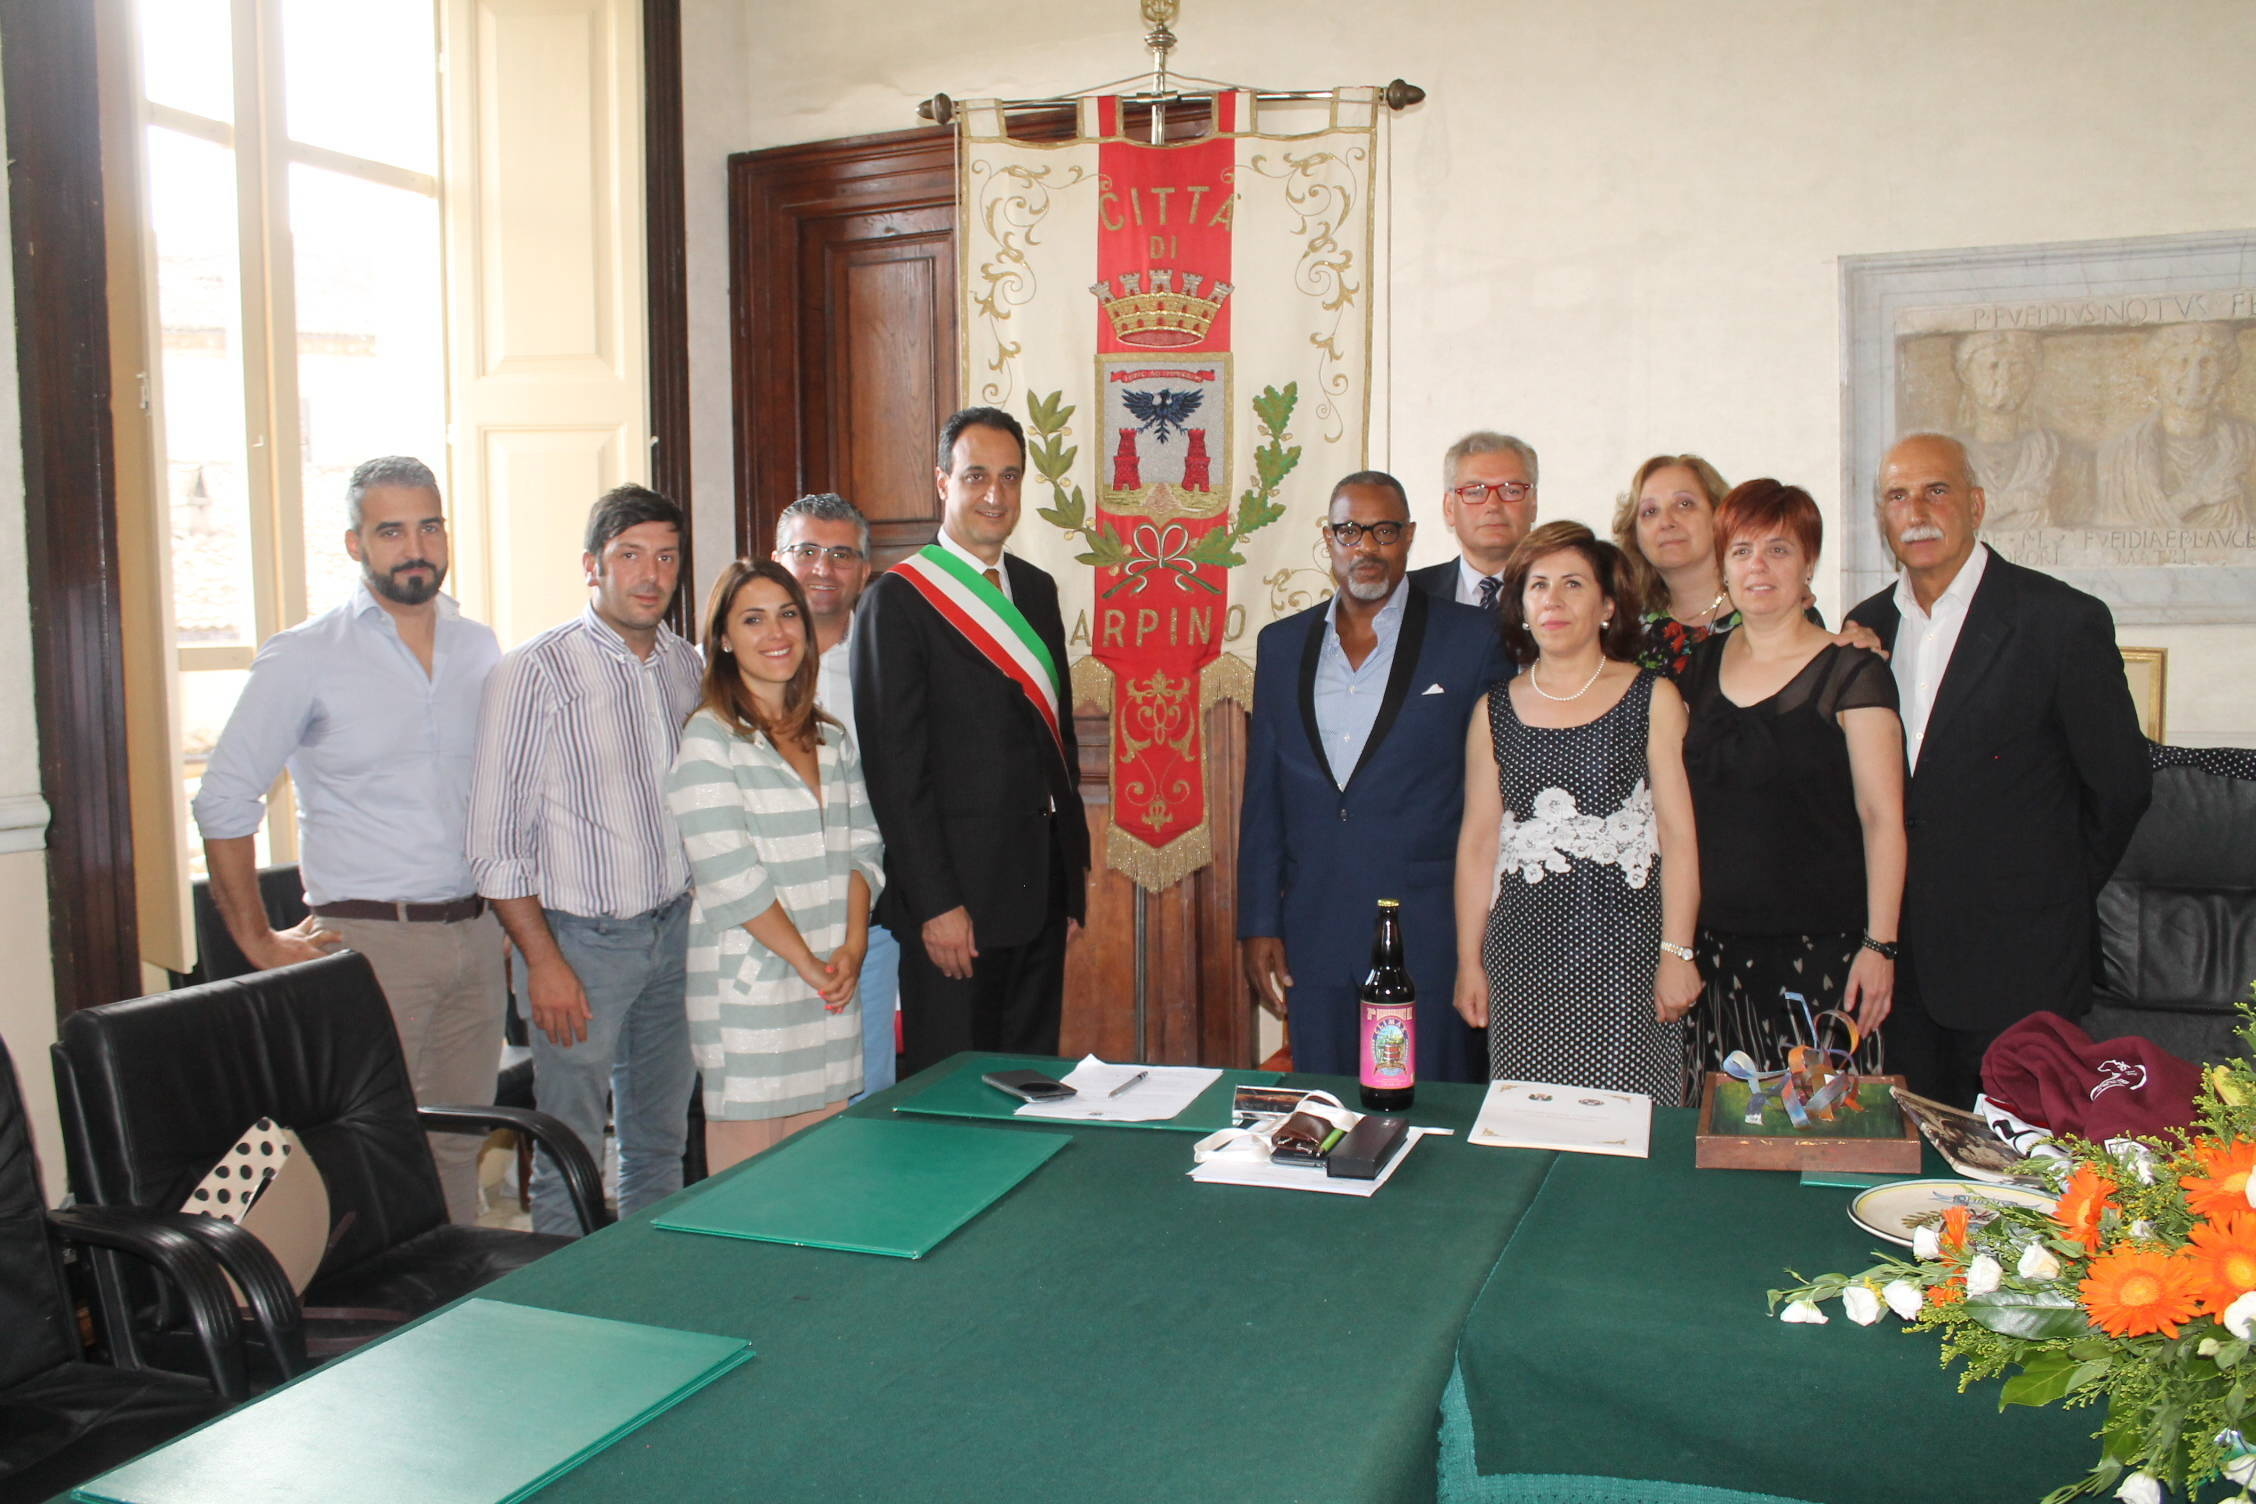 Roselle Park Sister City Adopted by Arpino Italy